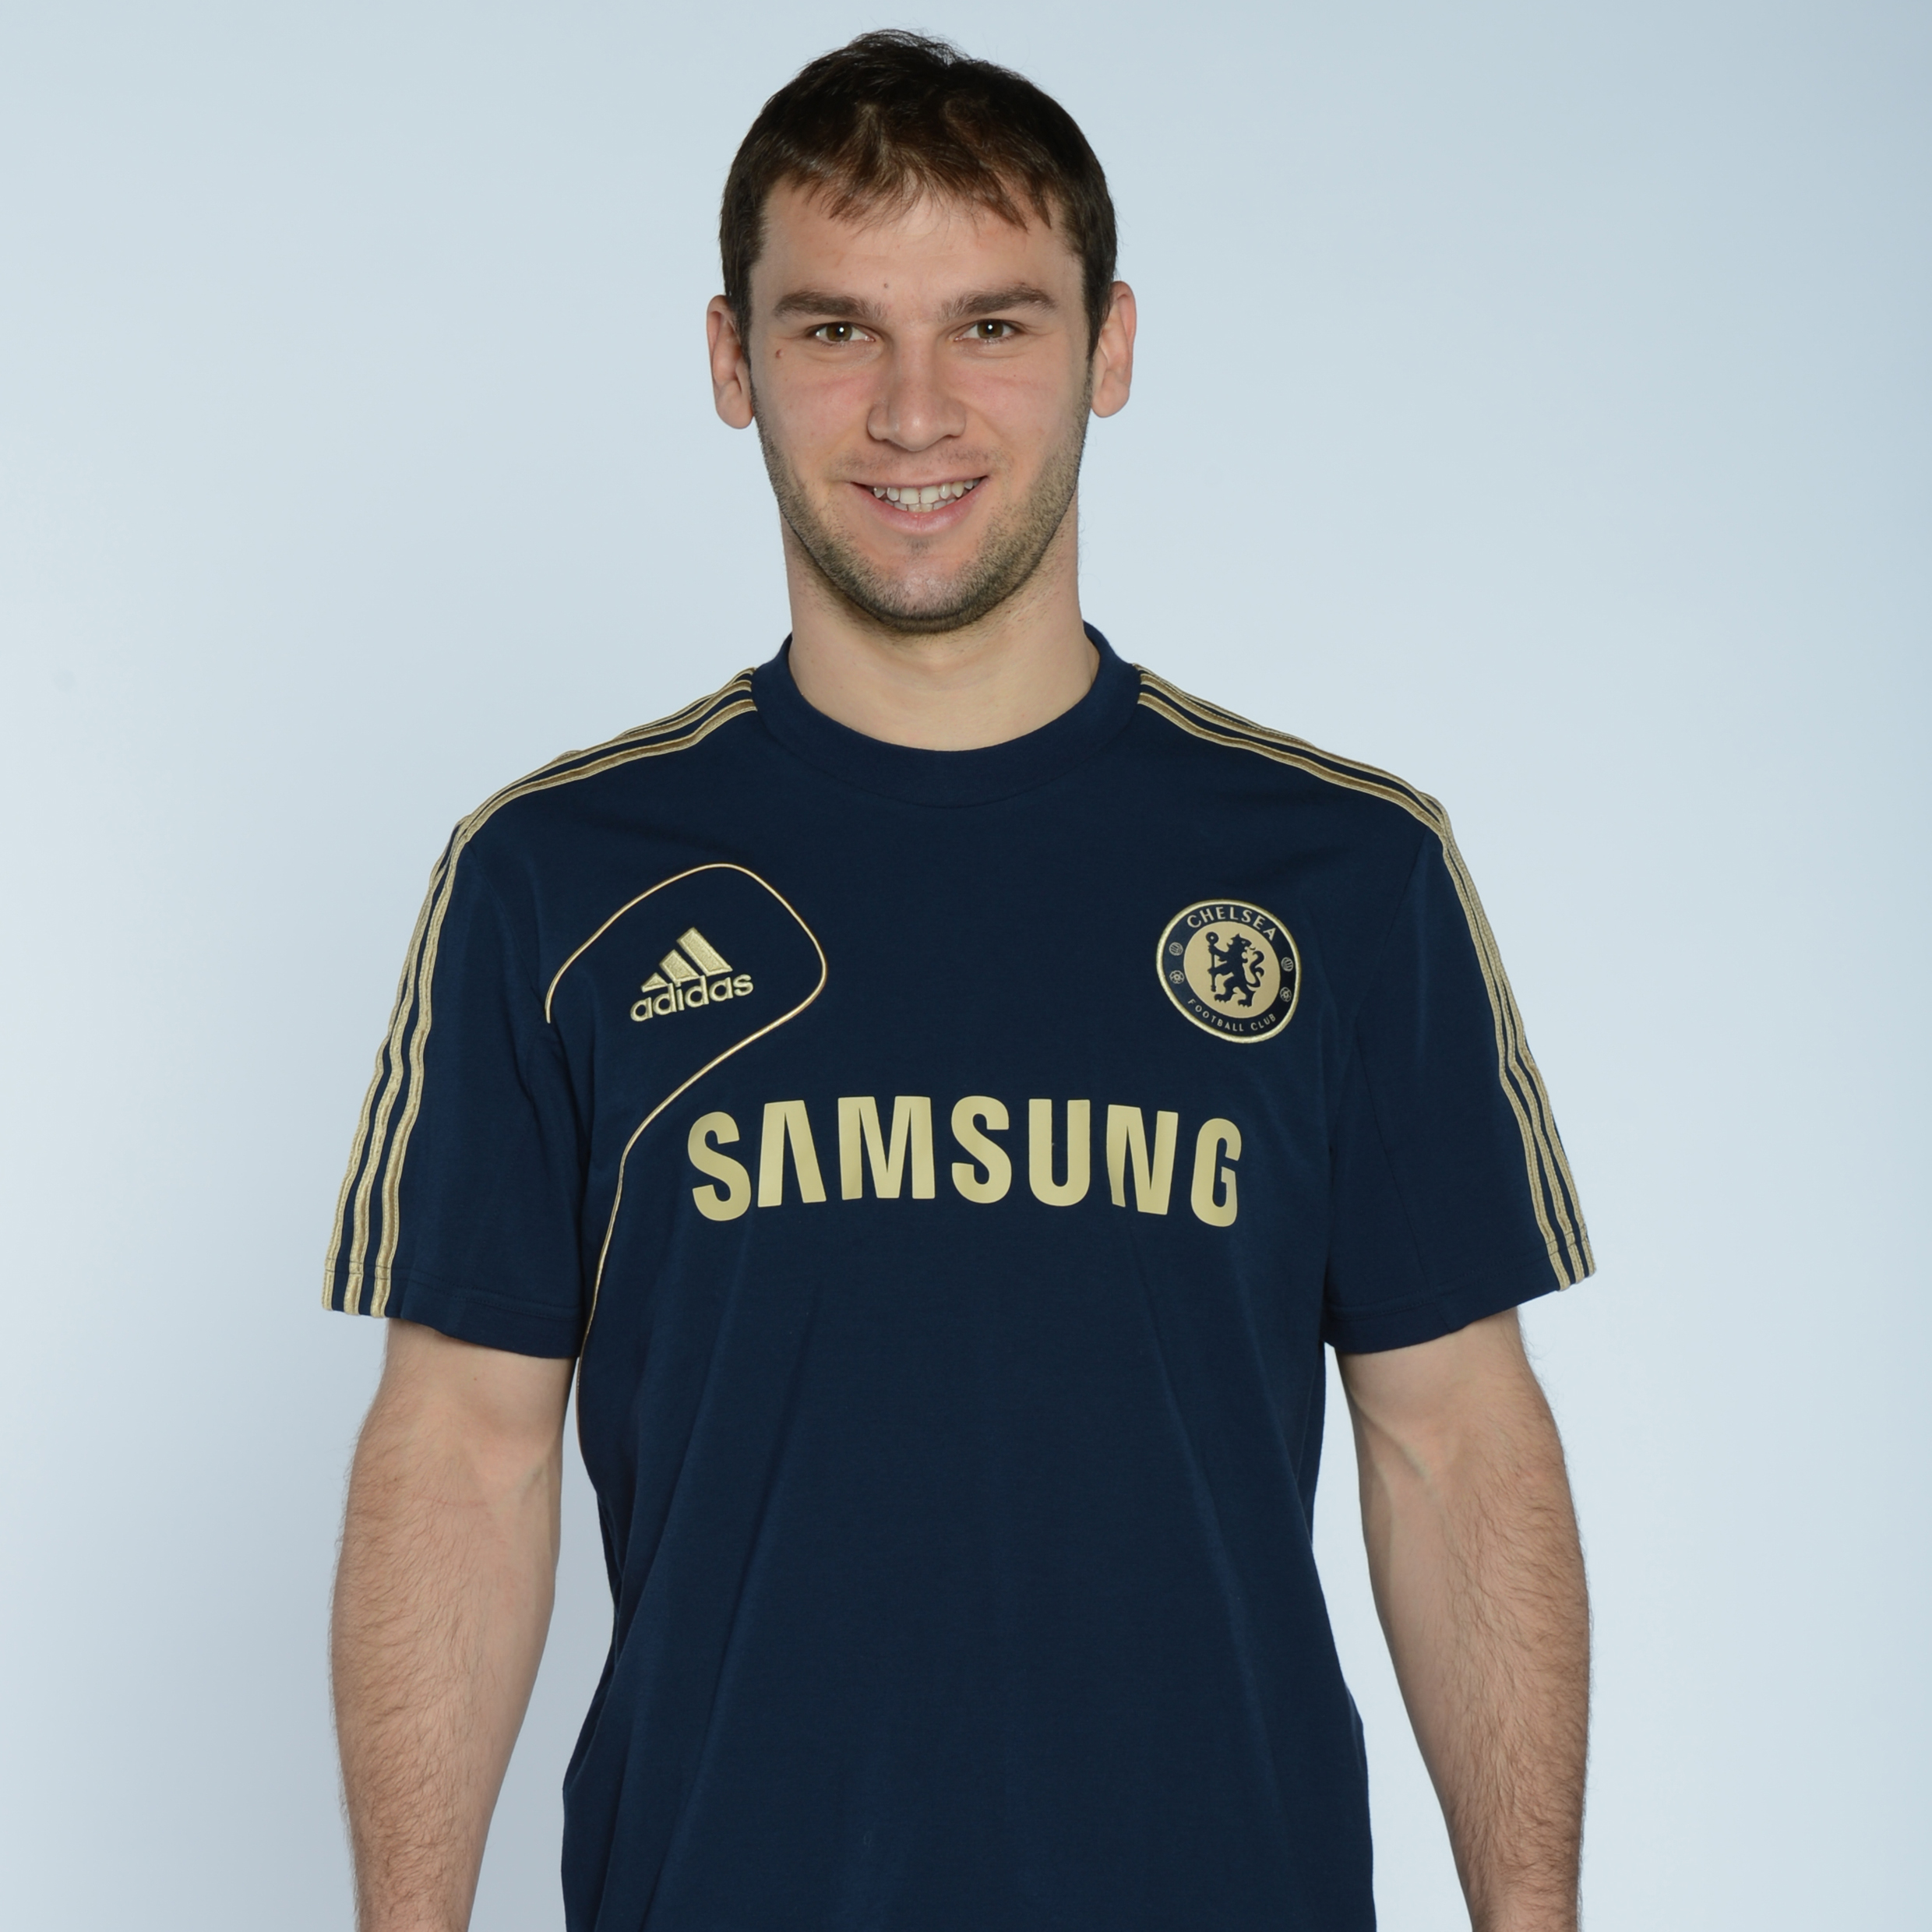 adidas Chelsea Training Jersey - Collegiate Navy/Light Football Gold